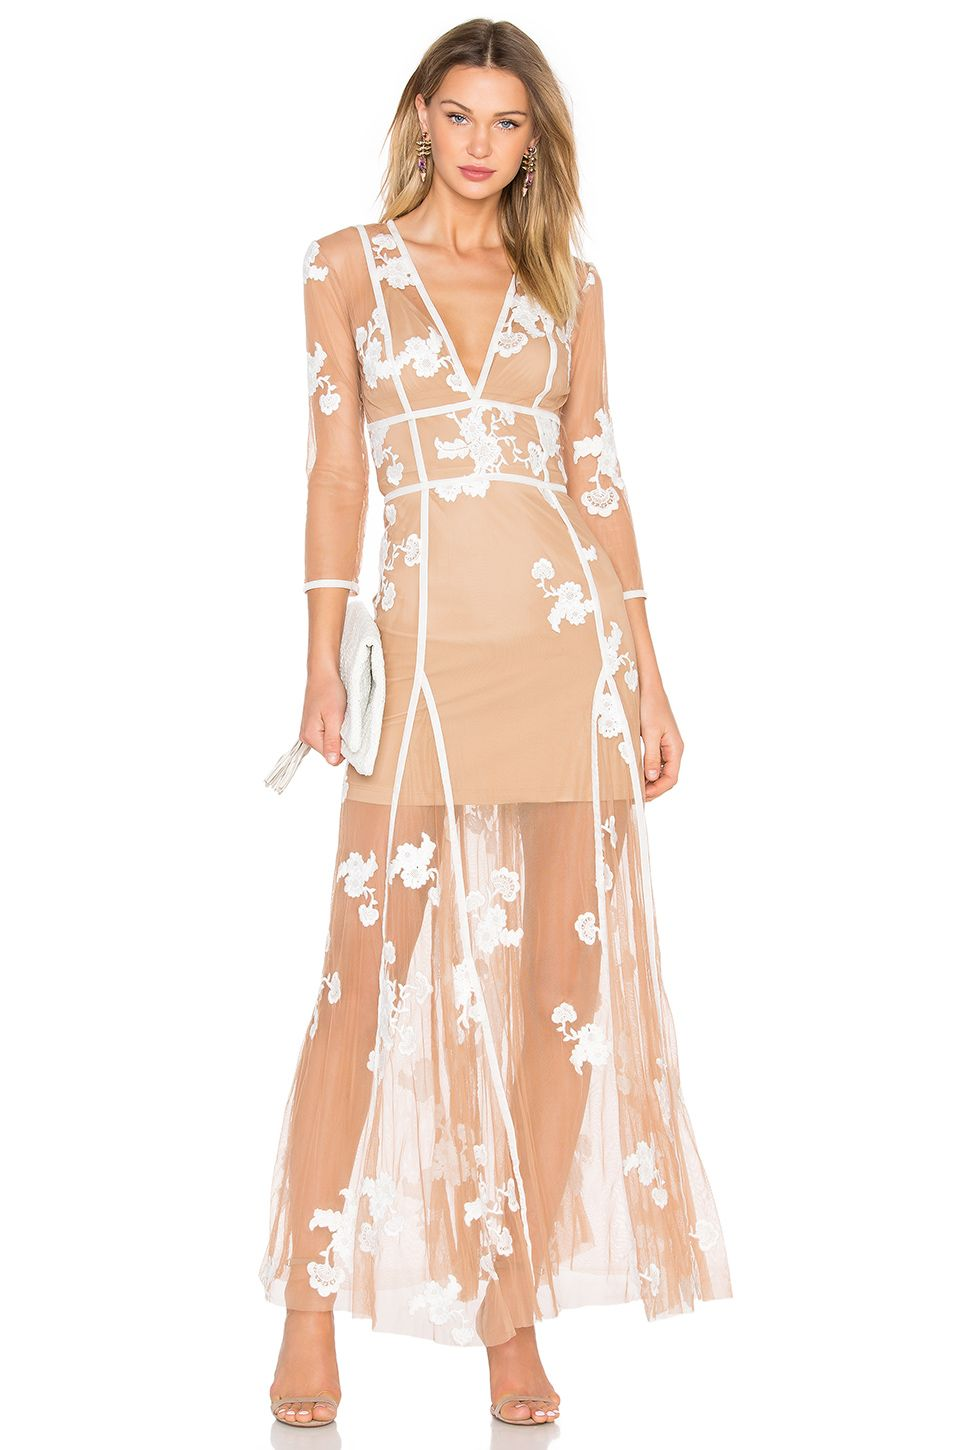 For Love & Lemons Elenora Maxi Dress in White & Nude | Clothes ...